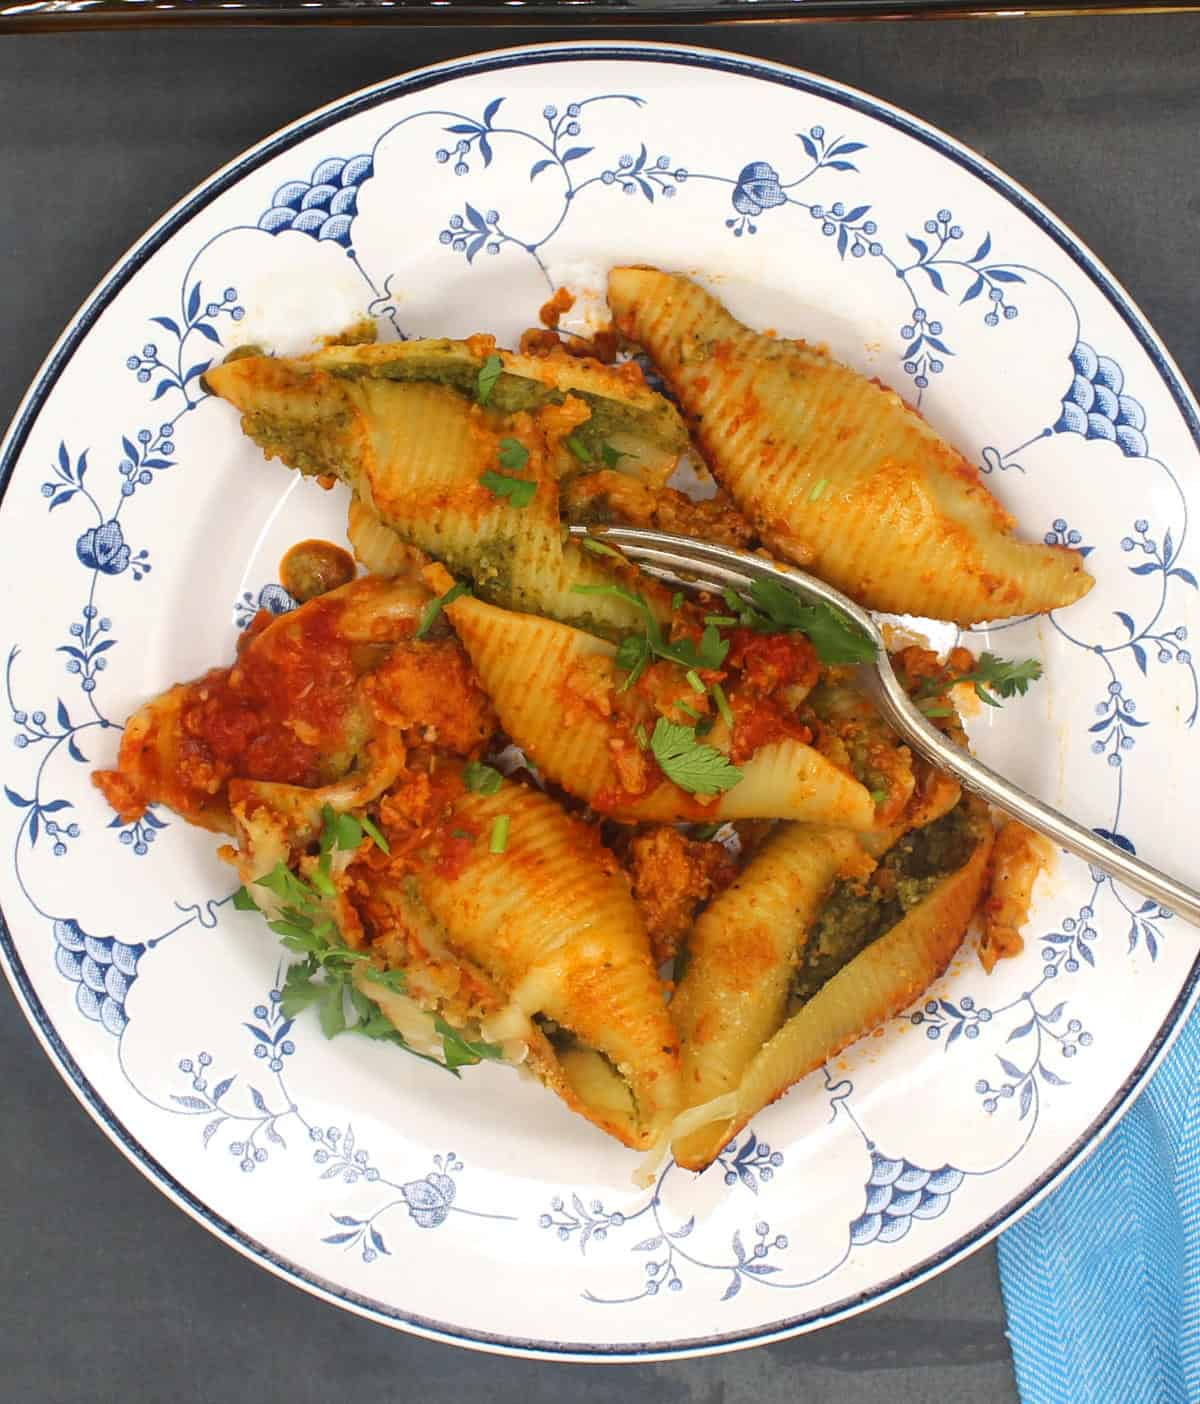 Stuffed pasta shells with spinach ricotta stuffing, marinara and parsley in an Italian blue and white dish.